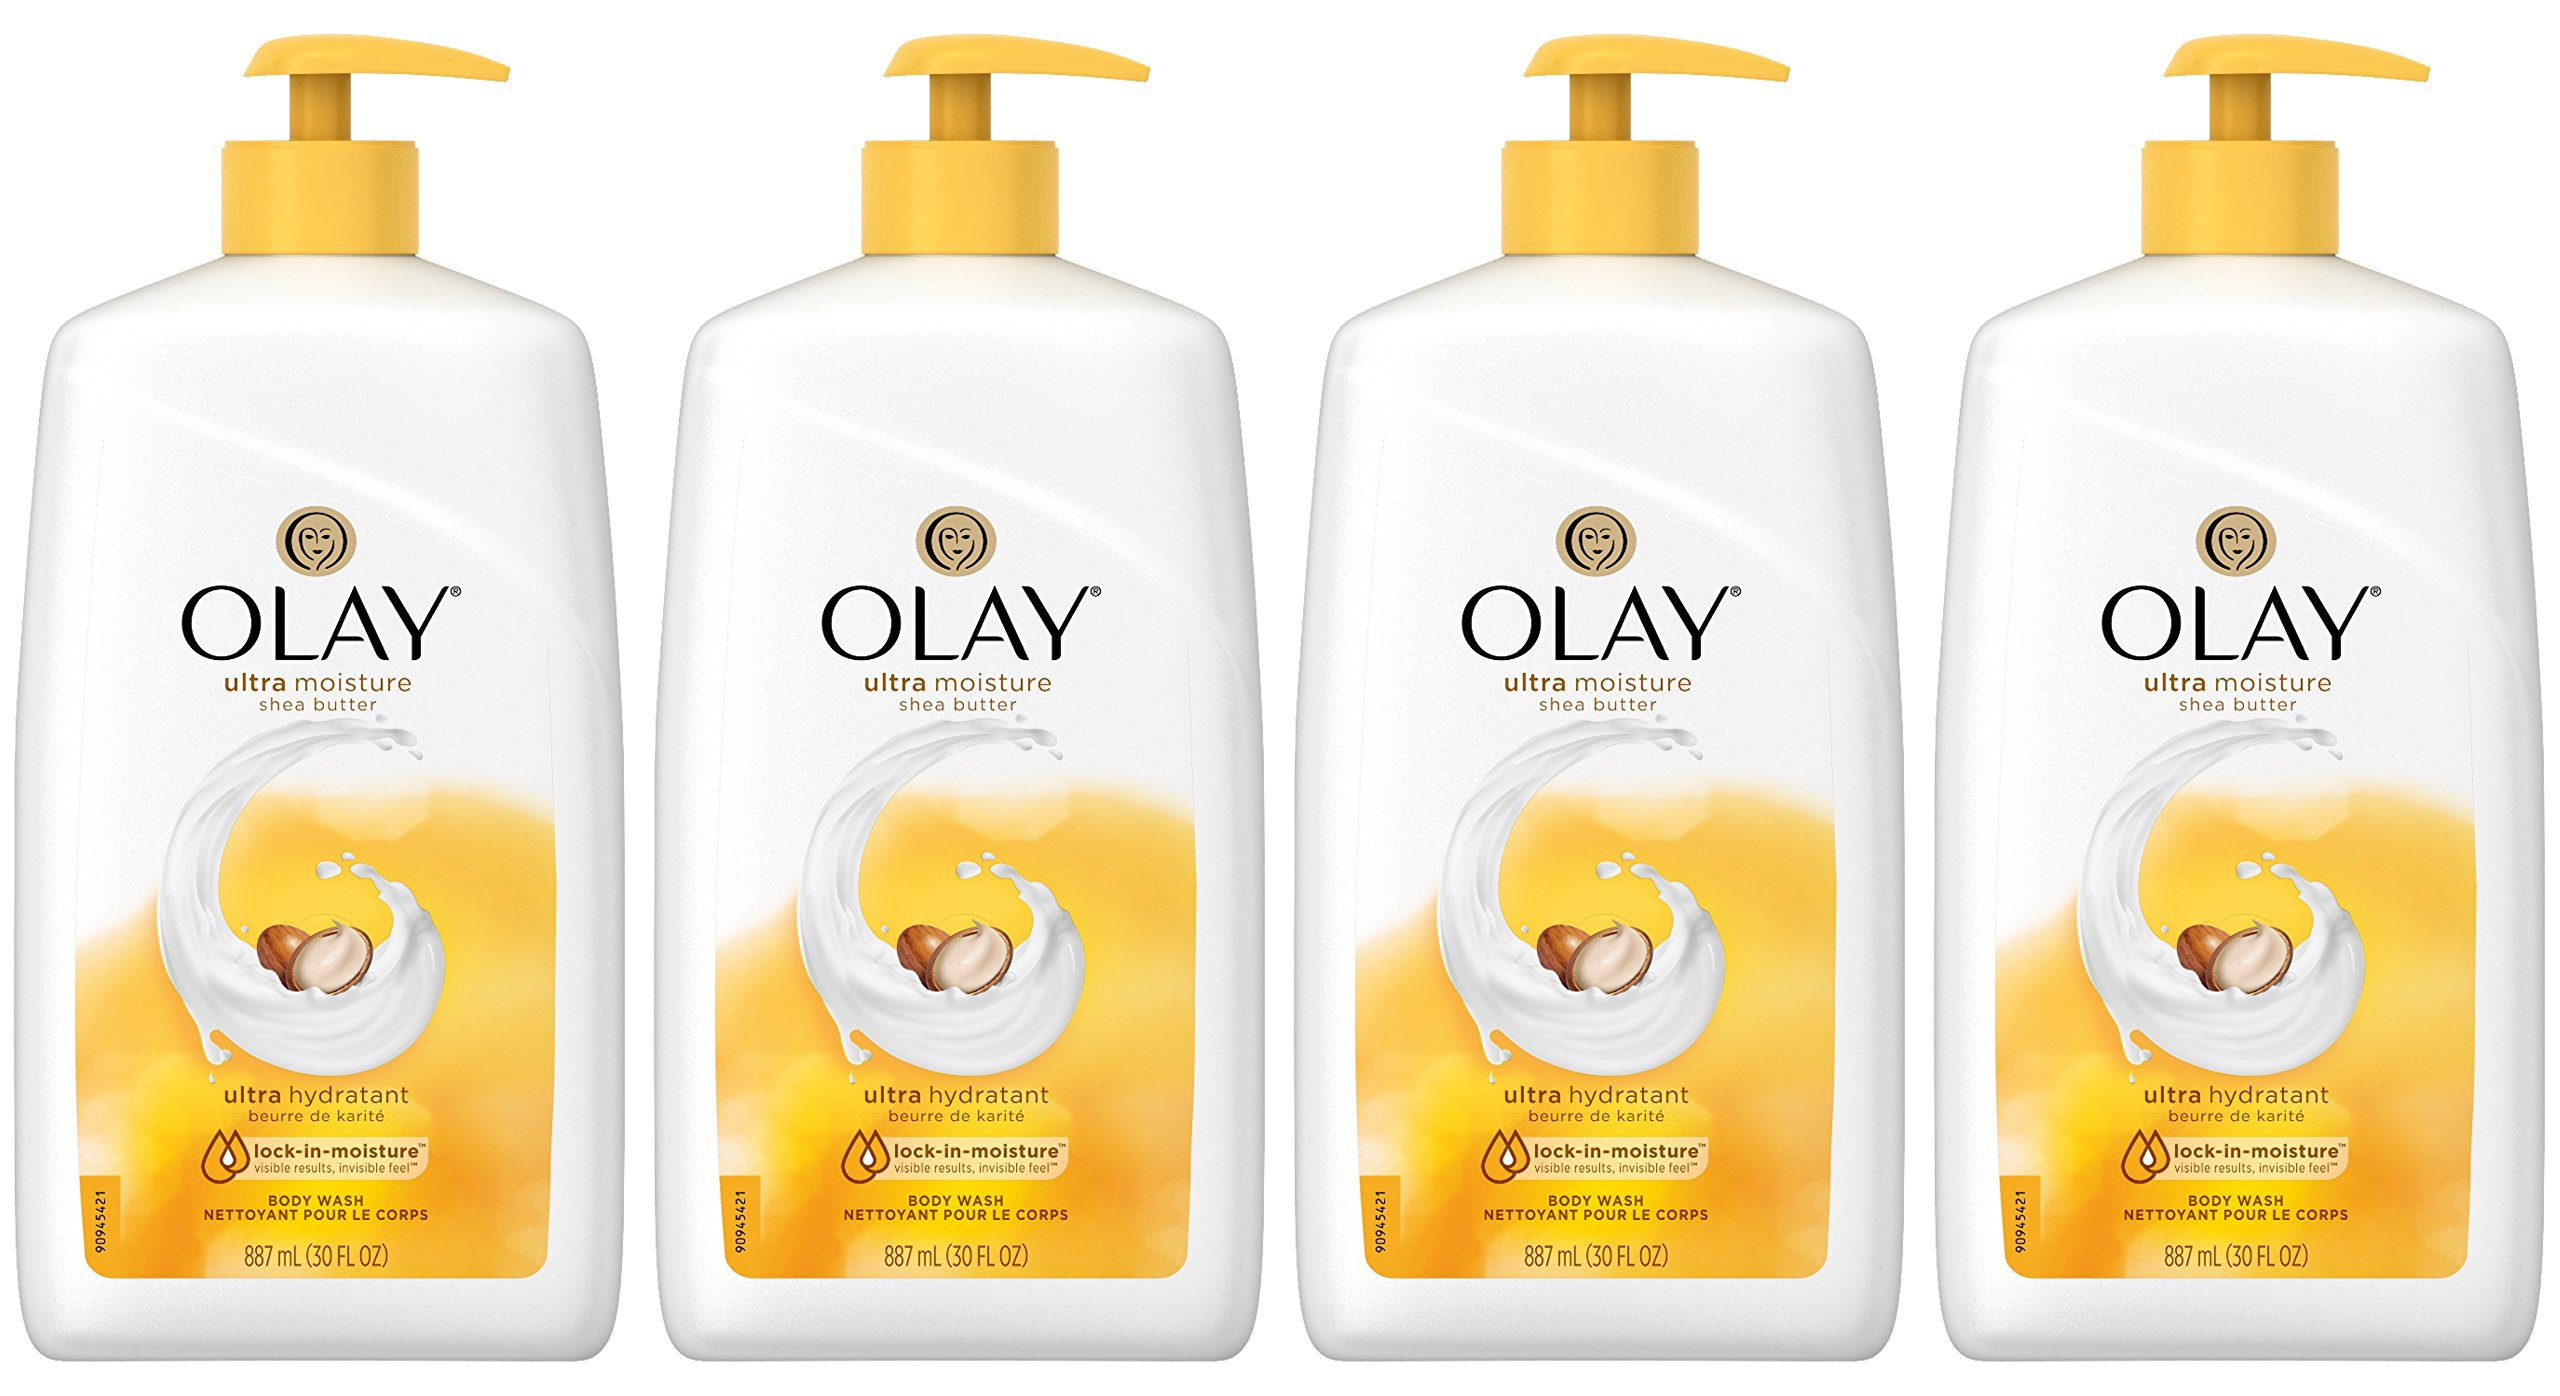 Olay Ultra Moisture Shea Butter Body Wash, 30 Fluid Ounce (Pack of 4) by Olay (Image #1)